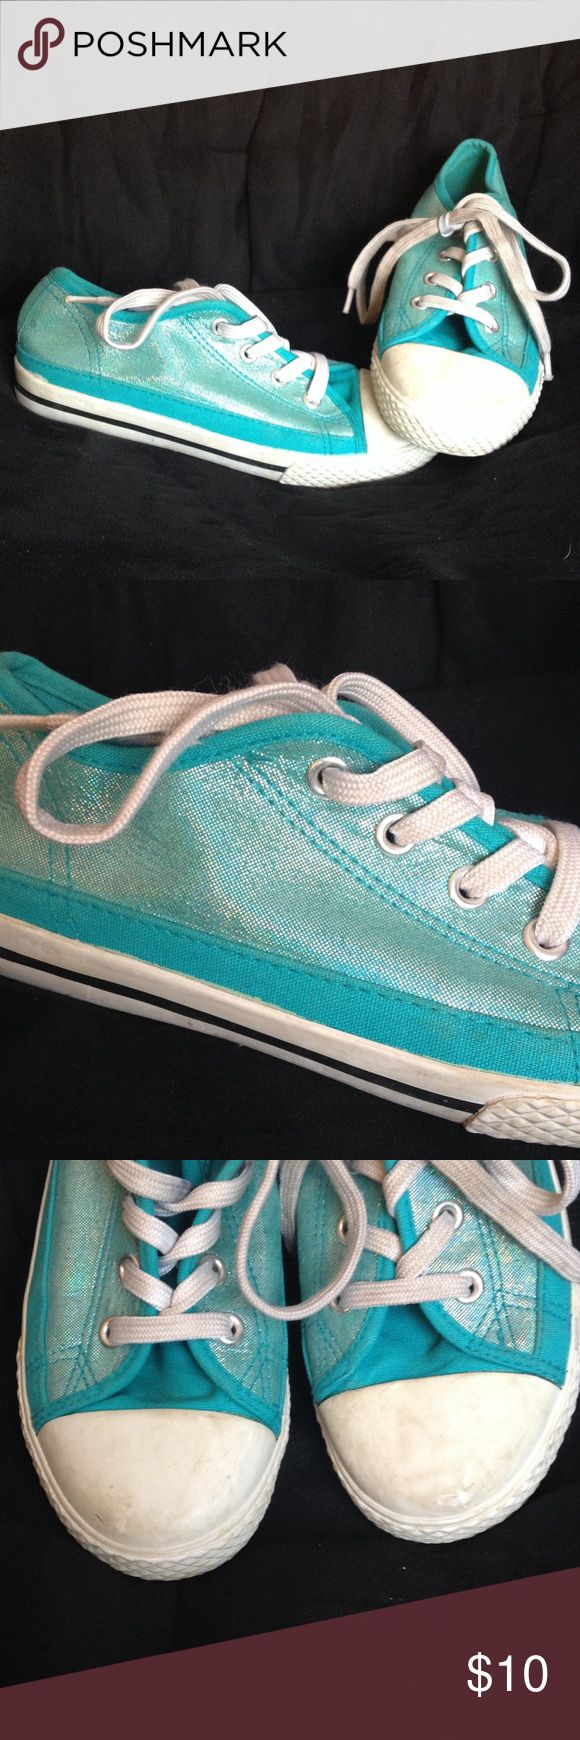 Disney Liv & Maddie shoes Disney Liv and Maddie, converse style shoes, size 1sparkly blue sides, non marking bottoms, a little wear on the white tops an laces could be corrected with a lil bleach water besides that great condition Disney Shoes Sneakers